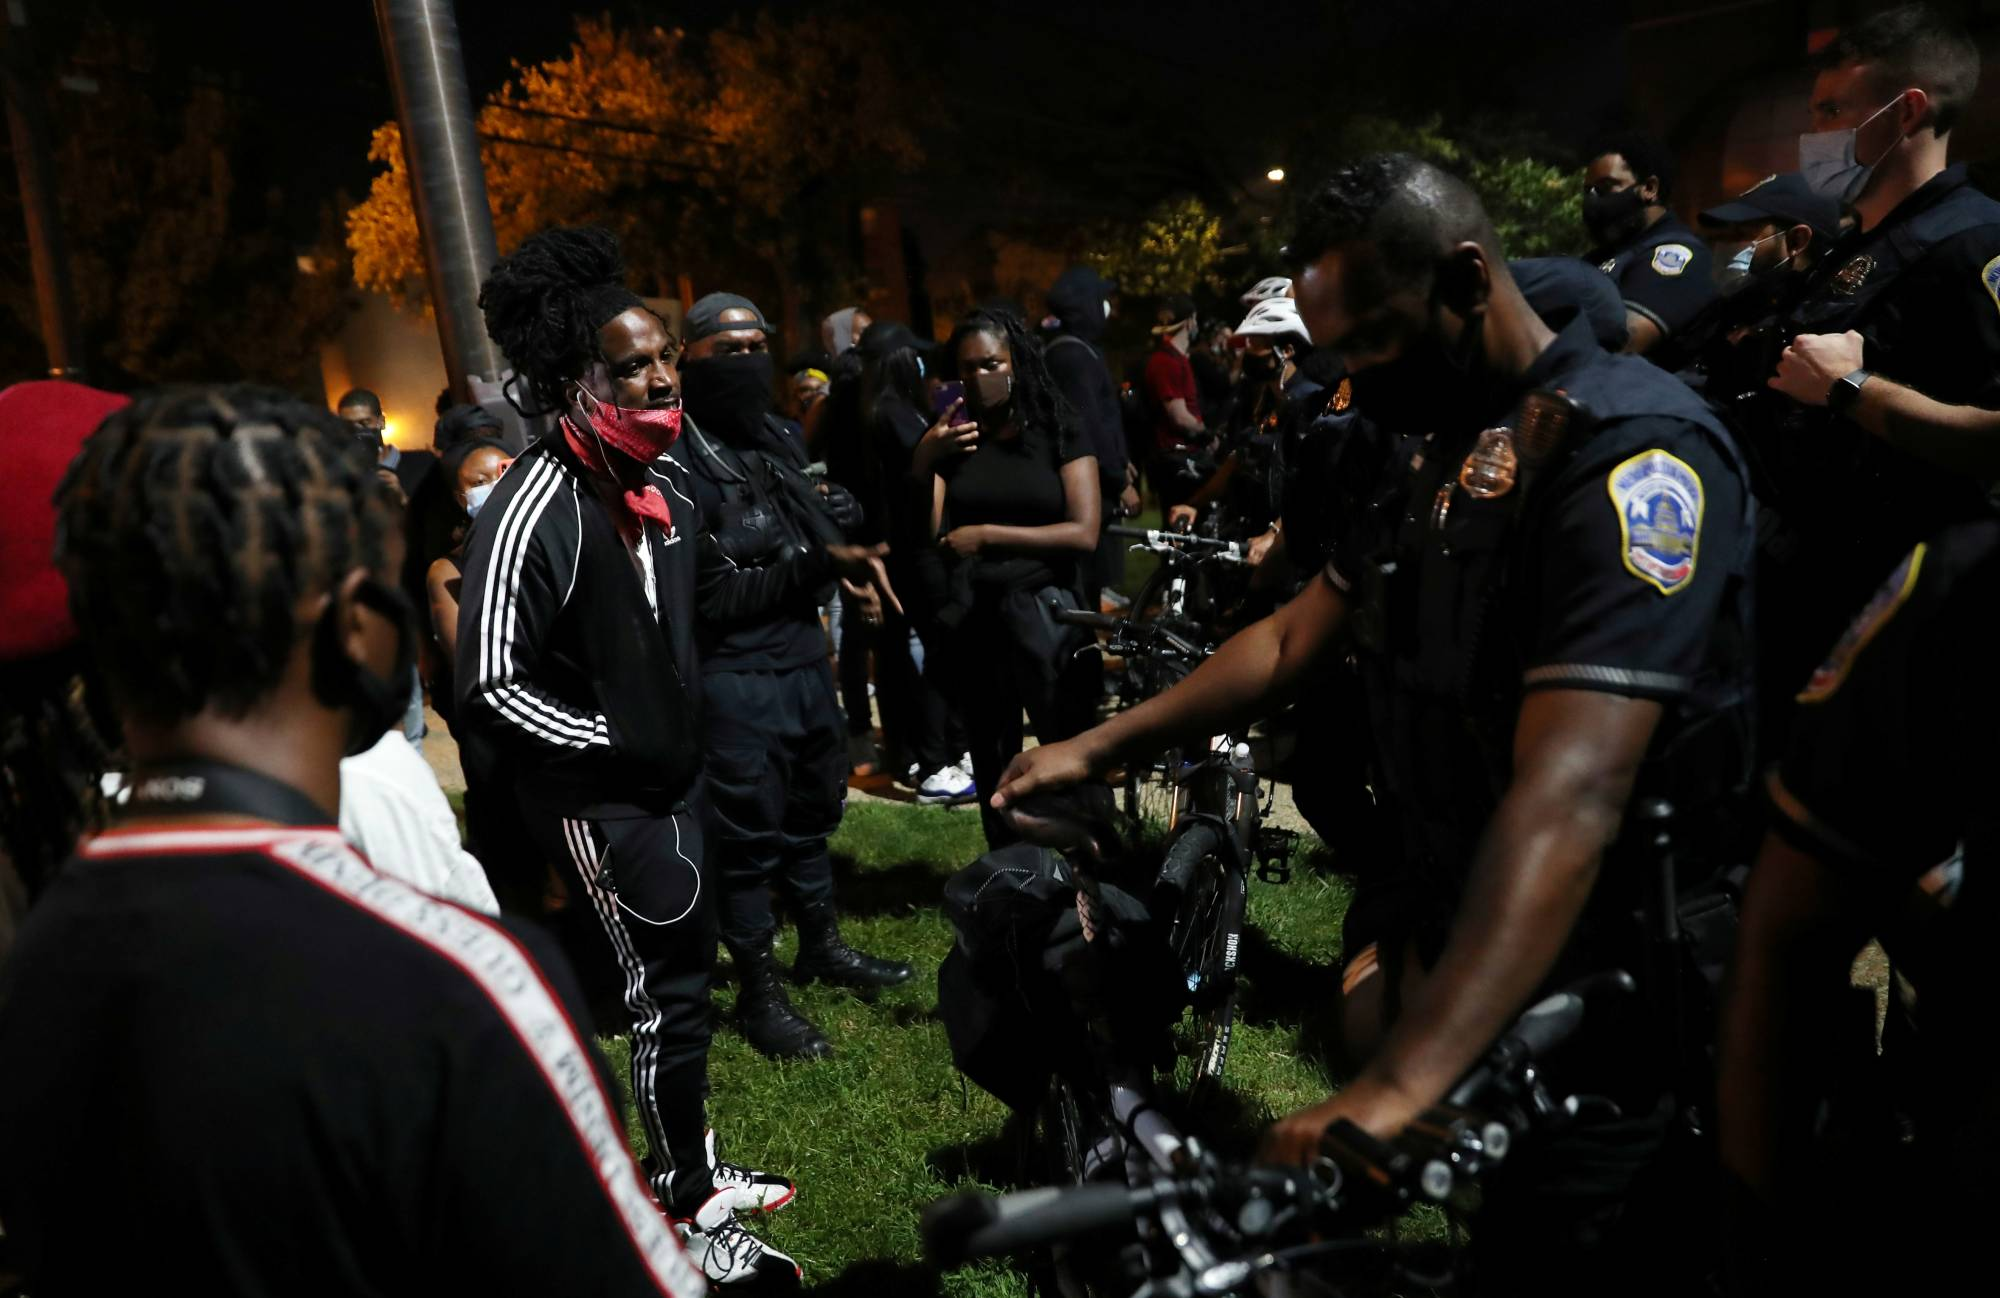 Protesters confront police officers outside of the 7th precinct on Wednesday to express their anger after Washington Metropolitan Police Department shot and killed a young black man in southeast DC. |  REUTERS